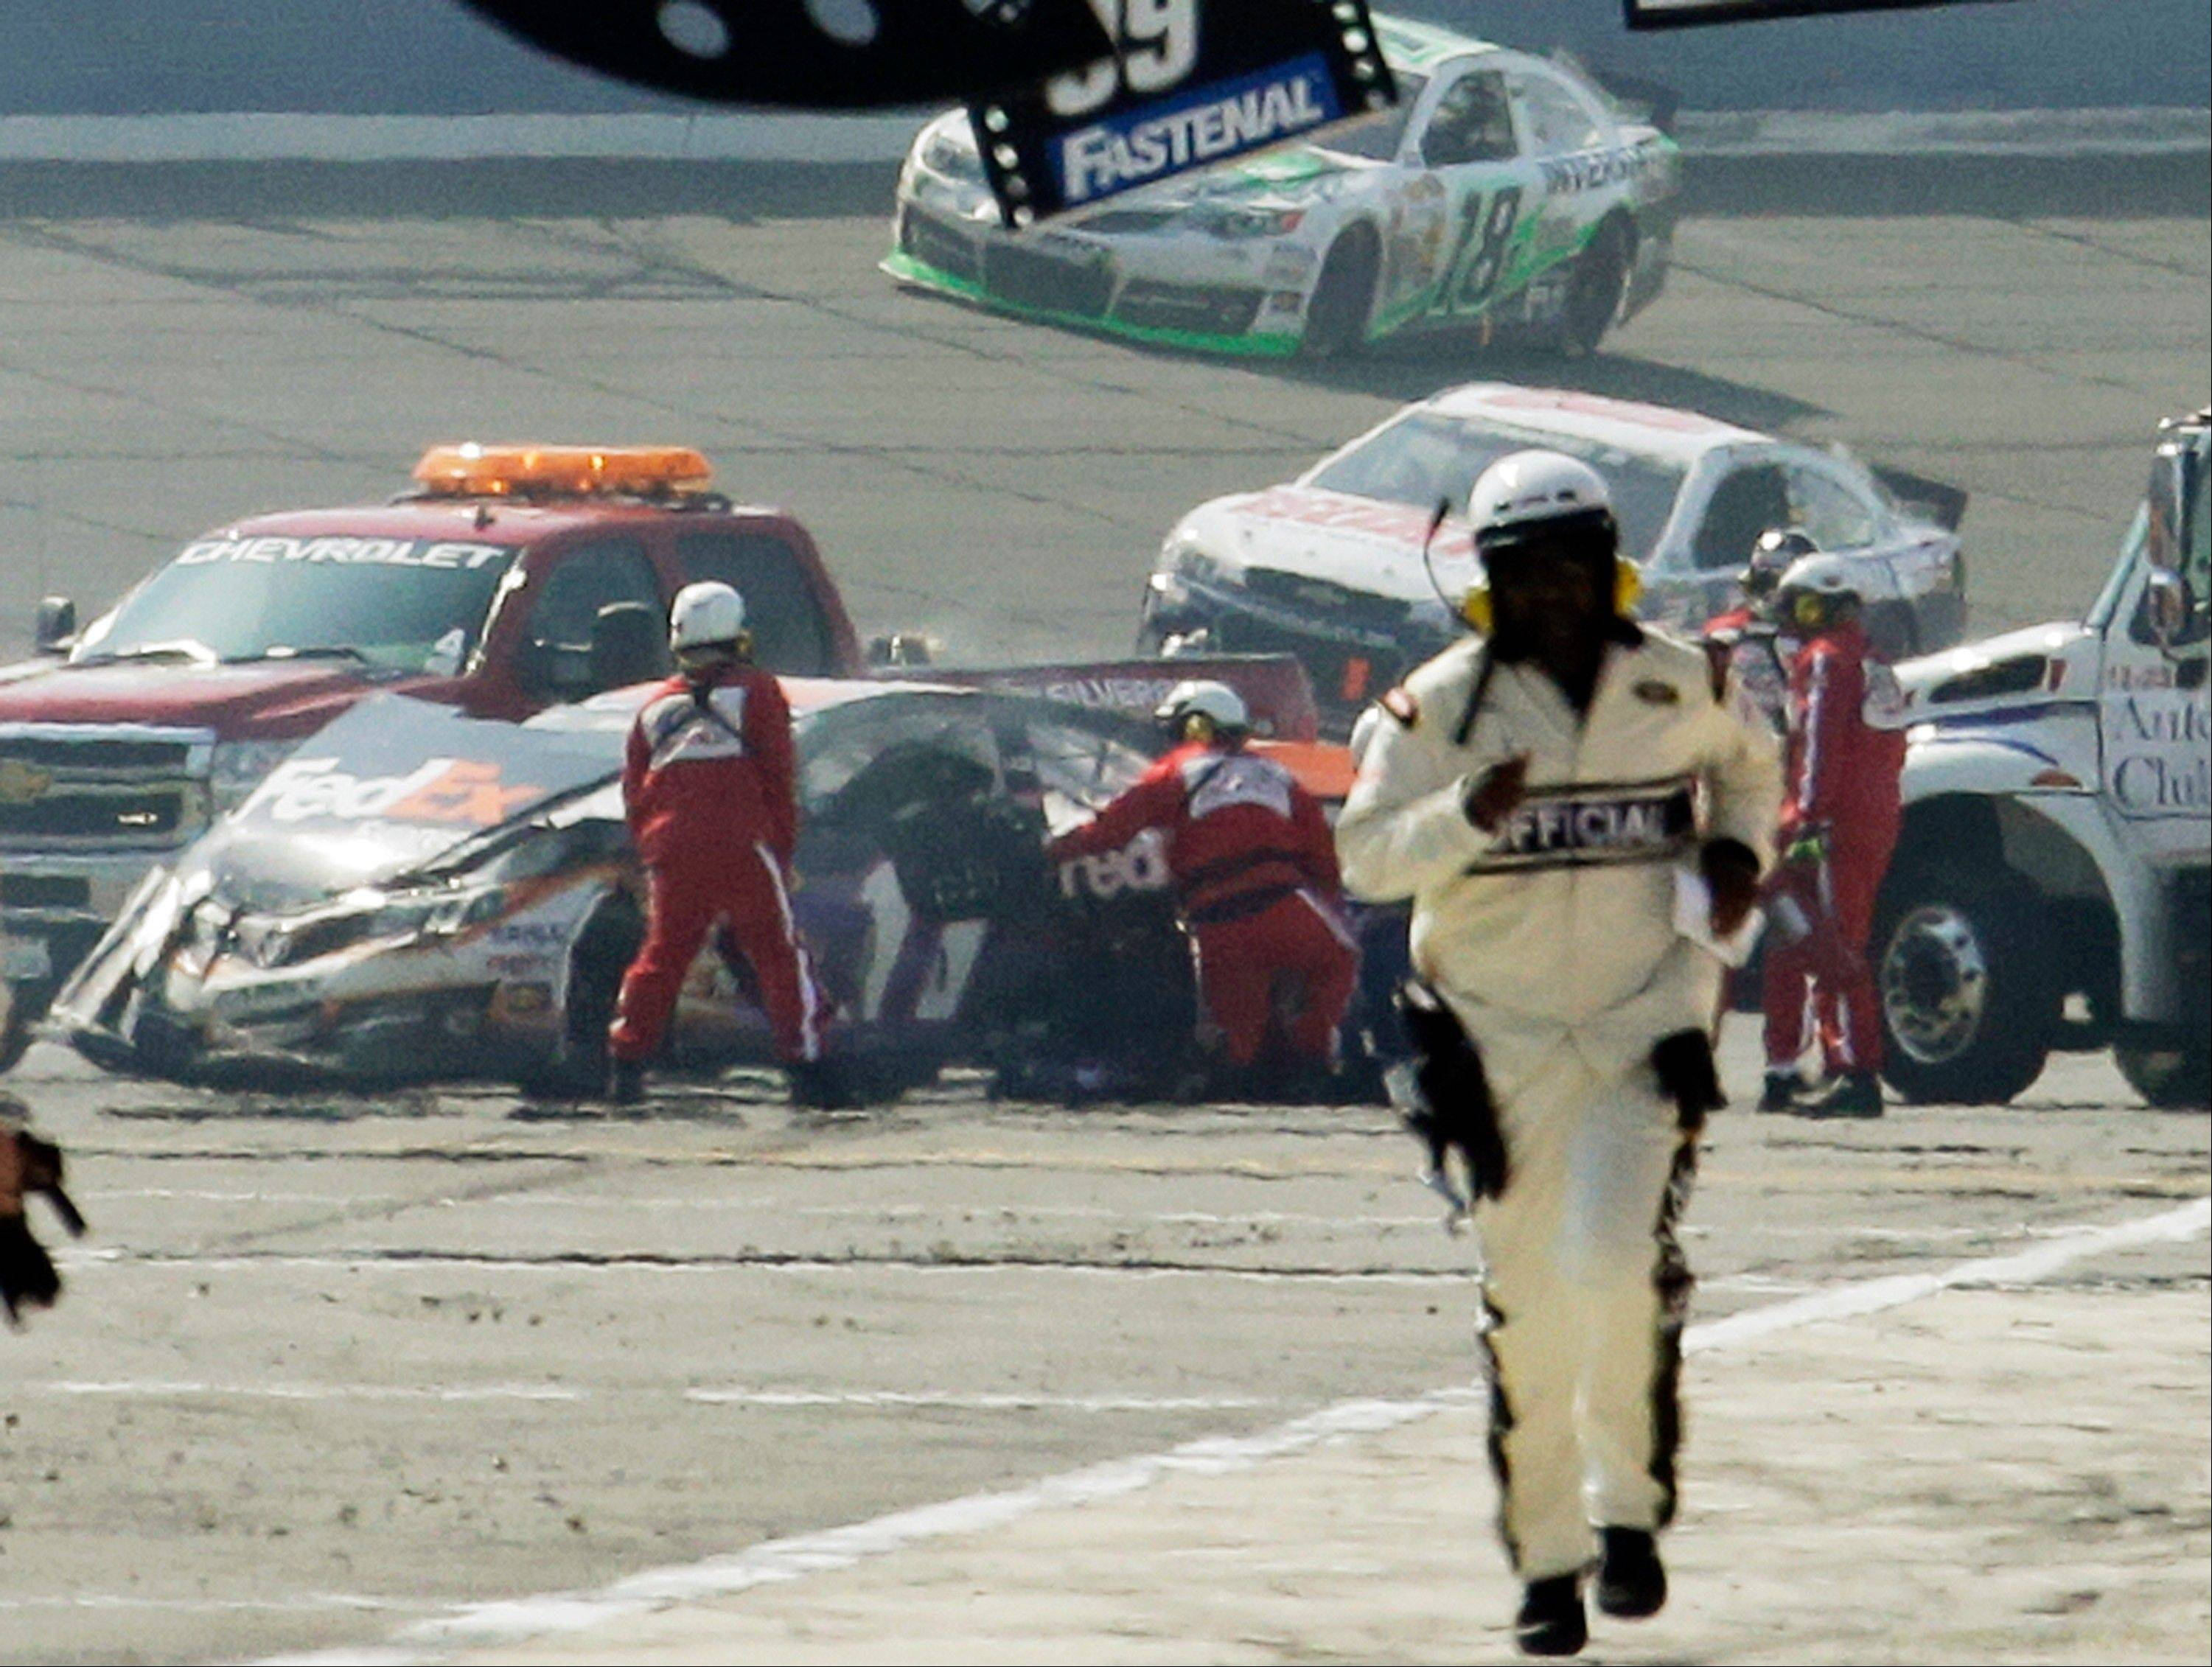 Rescue workers tend to the wreckage of the No. 11 FedEx Express Toyota driven by Denny Hamlin after he collided with Joey Logano Sunday on the final lap of the NASCAR Sprint Cup series auto race in Fontana, Calif. The pair had been battling for the lead the last three laps. The No. 18 car of Kyle Busch passes behind on its victory lap.